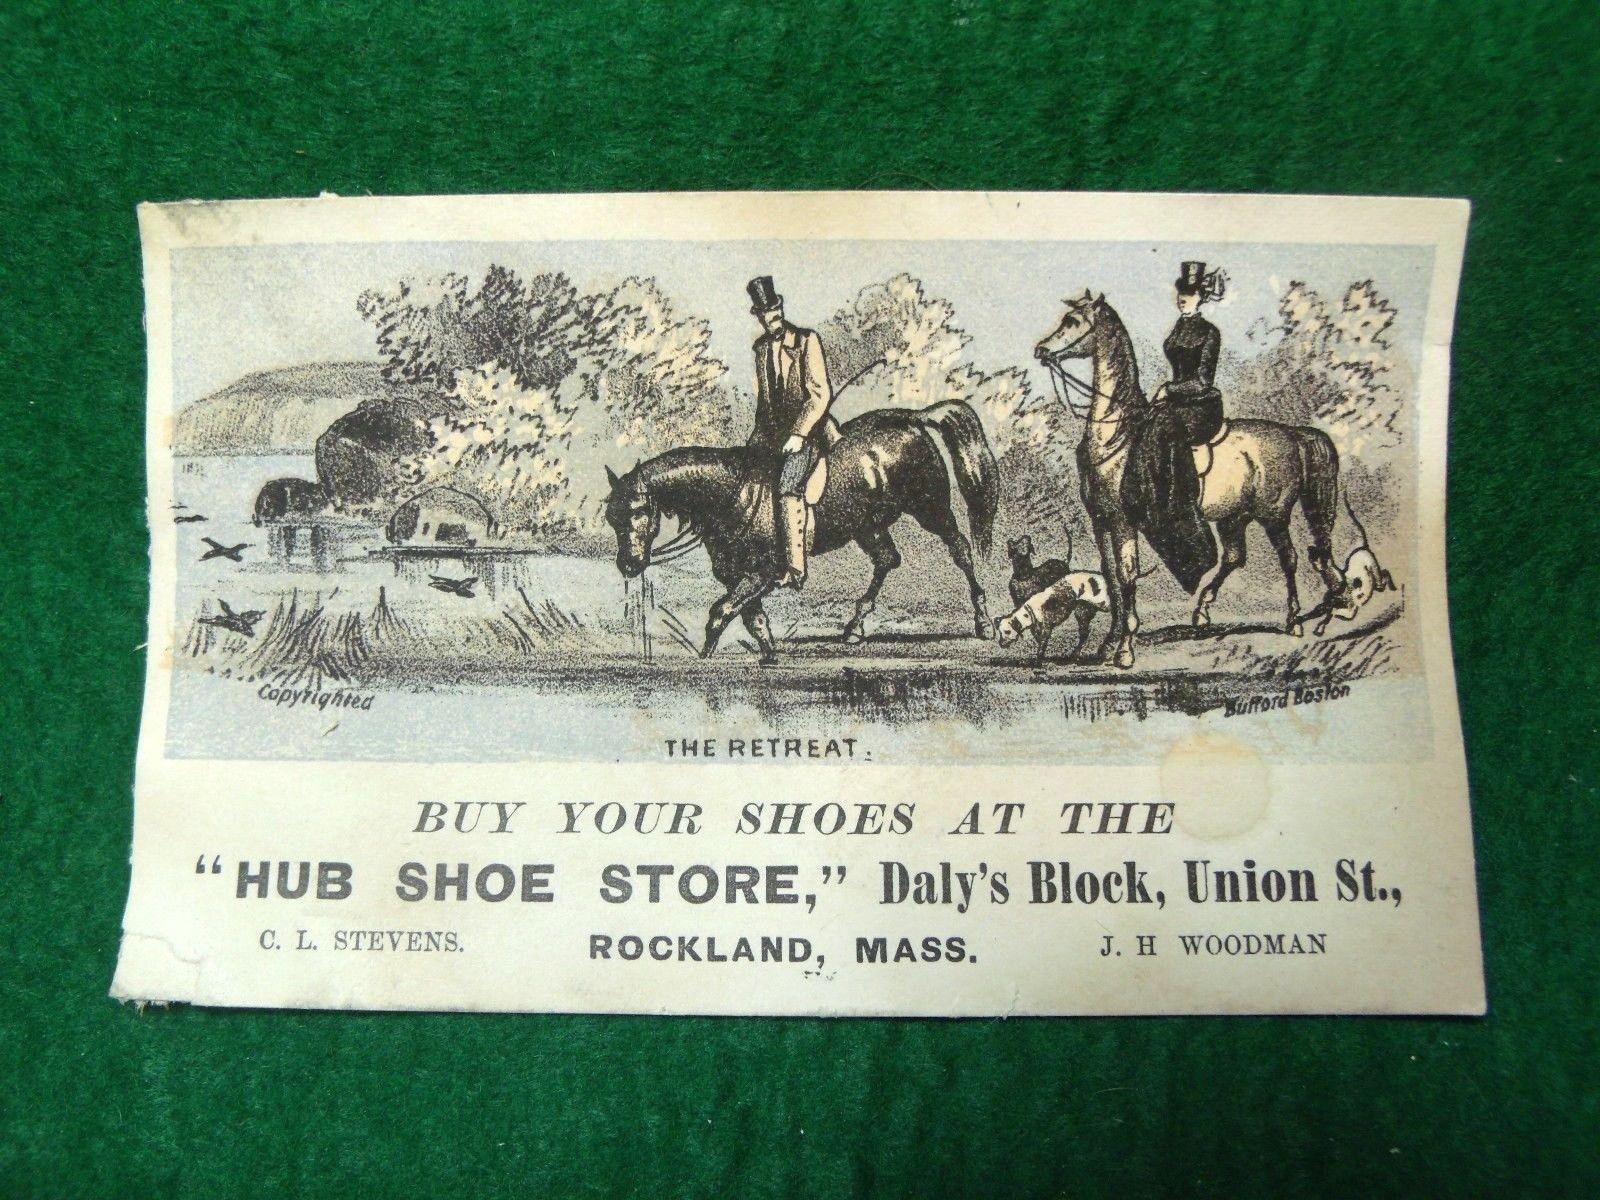 Hub Shoe Store, Daily's Block, Union St, Rockland